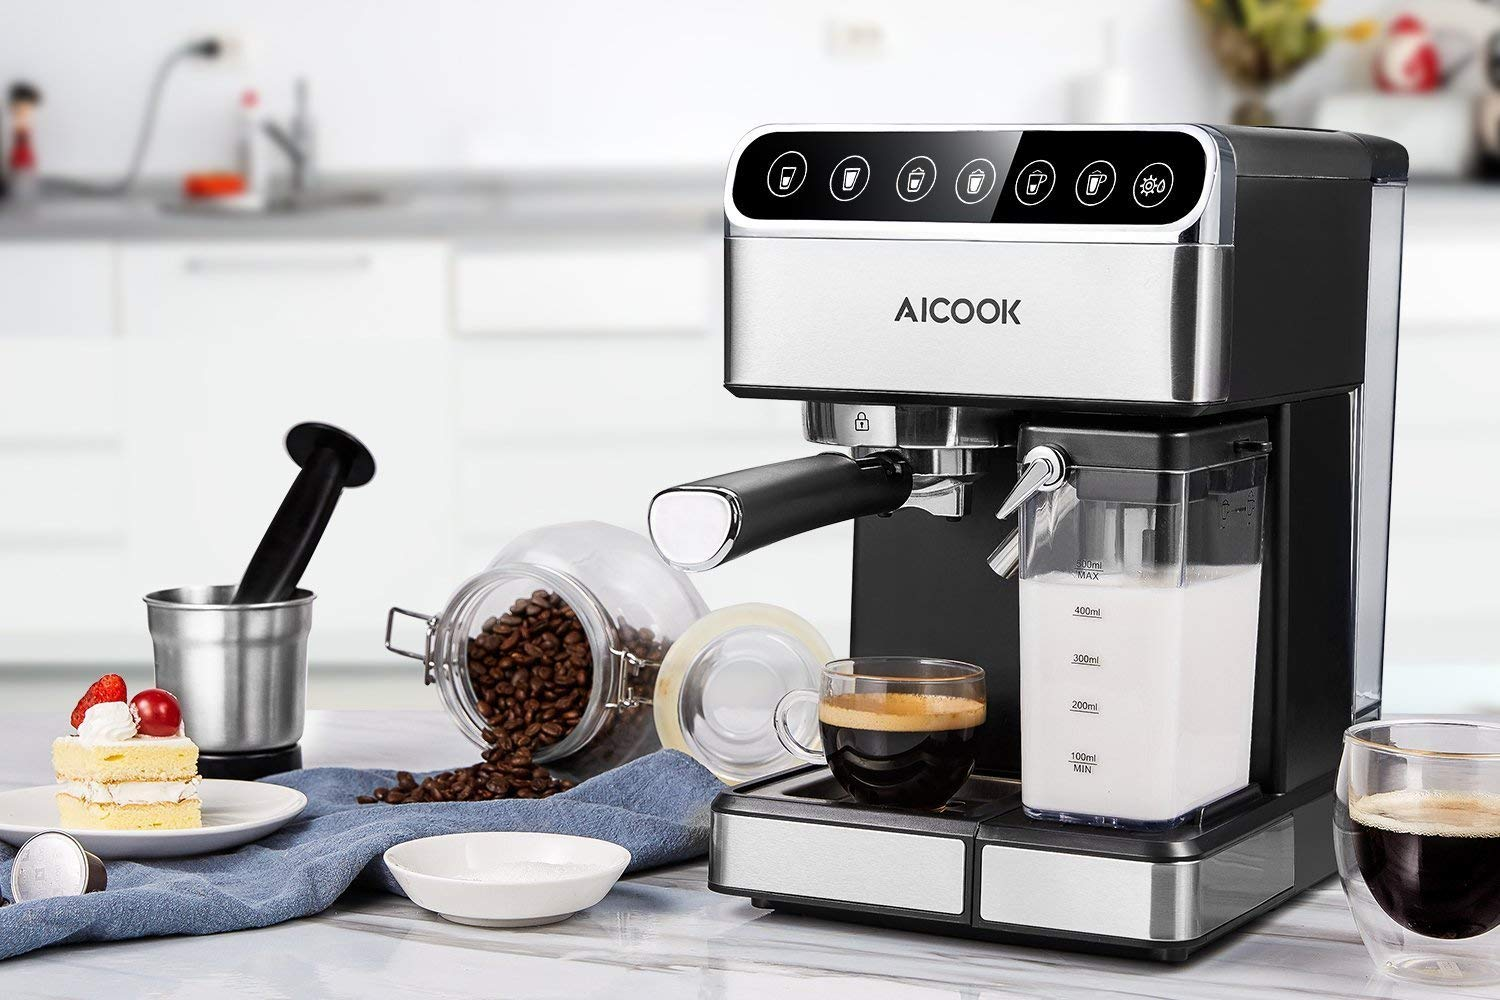 prime day appliance deals